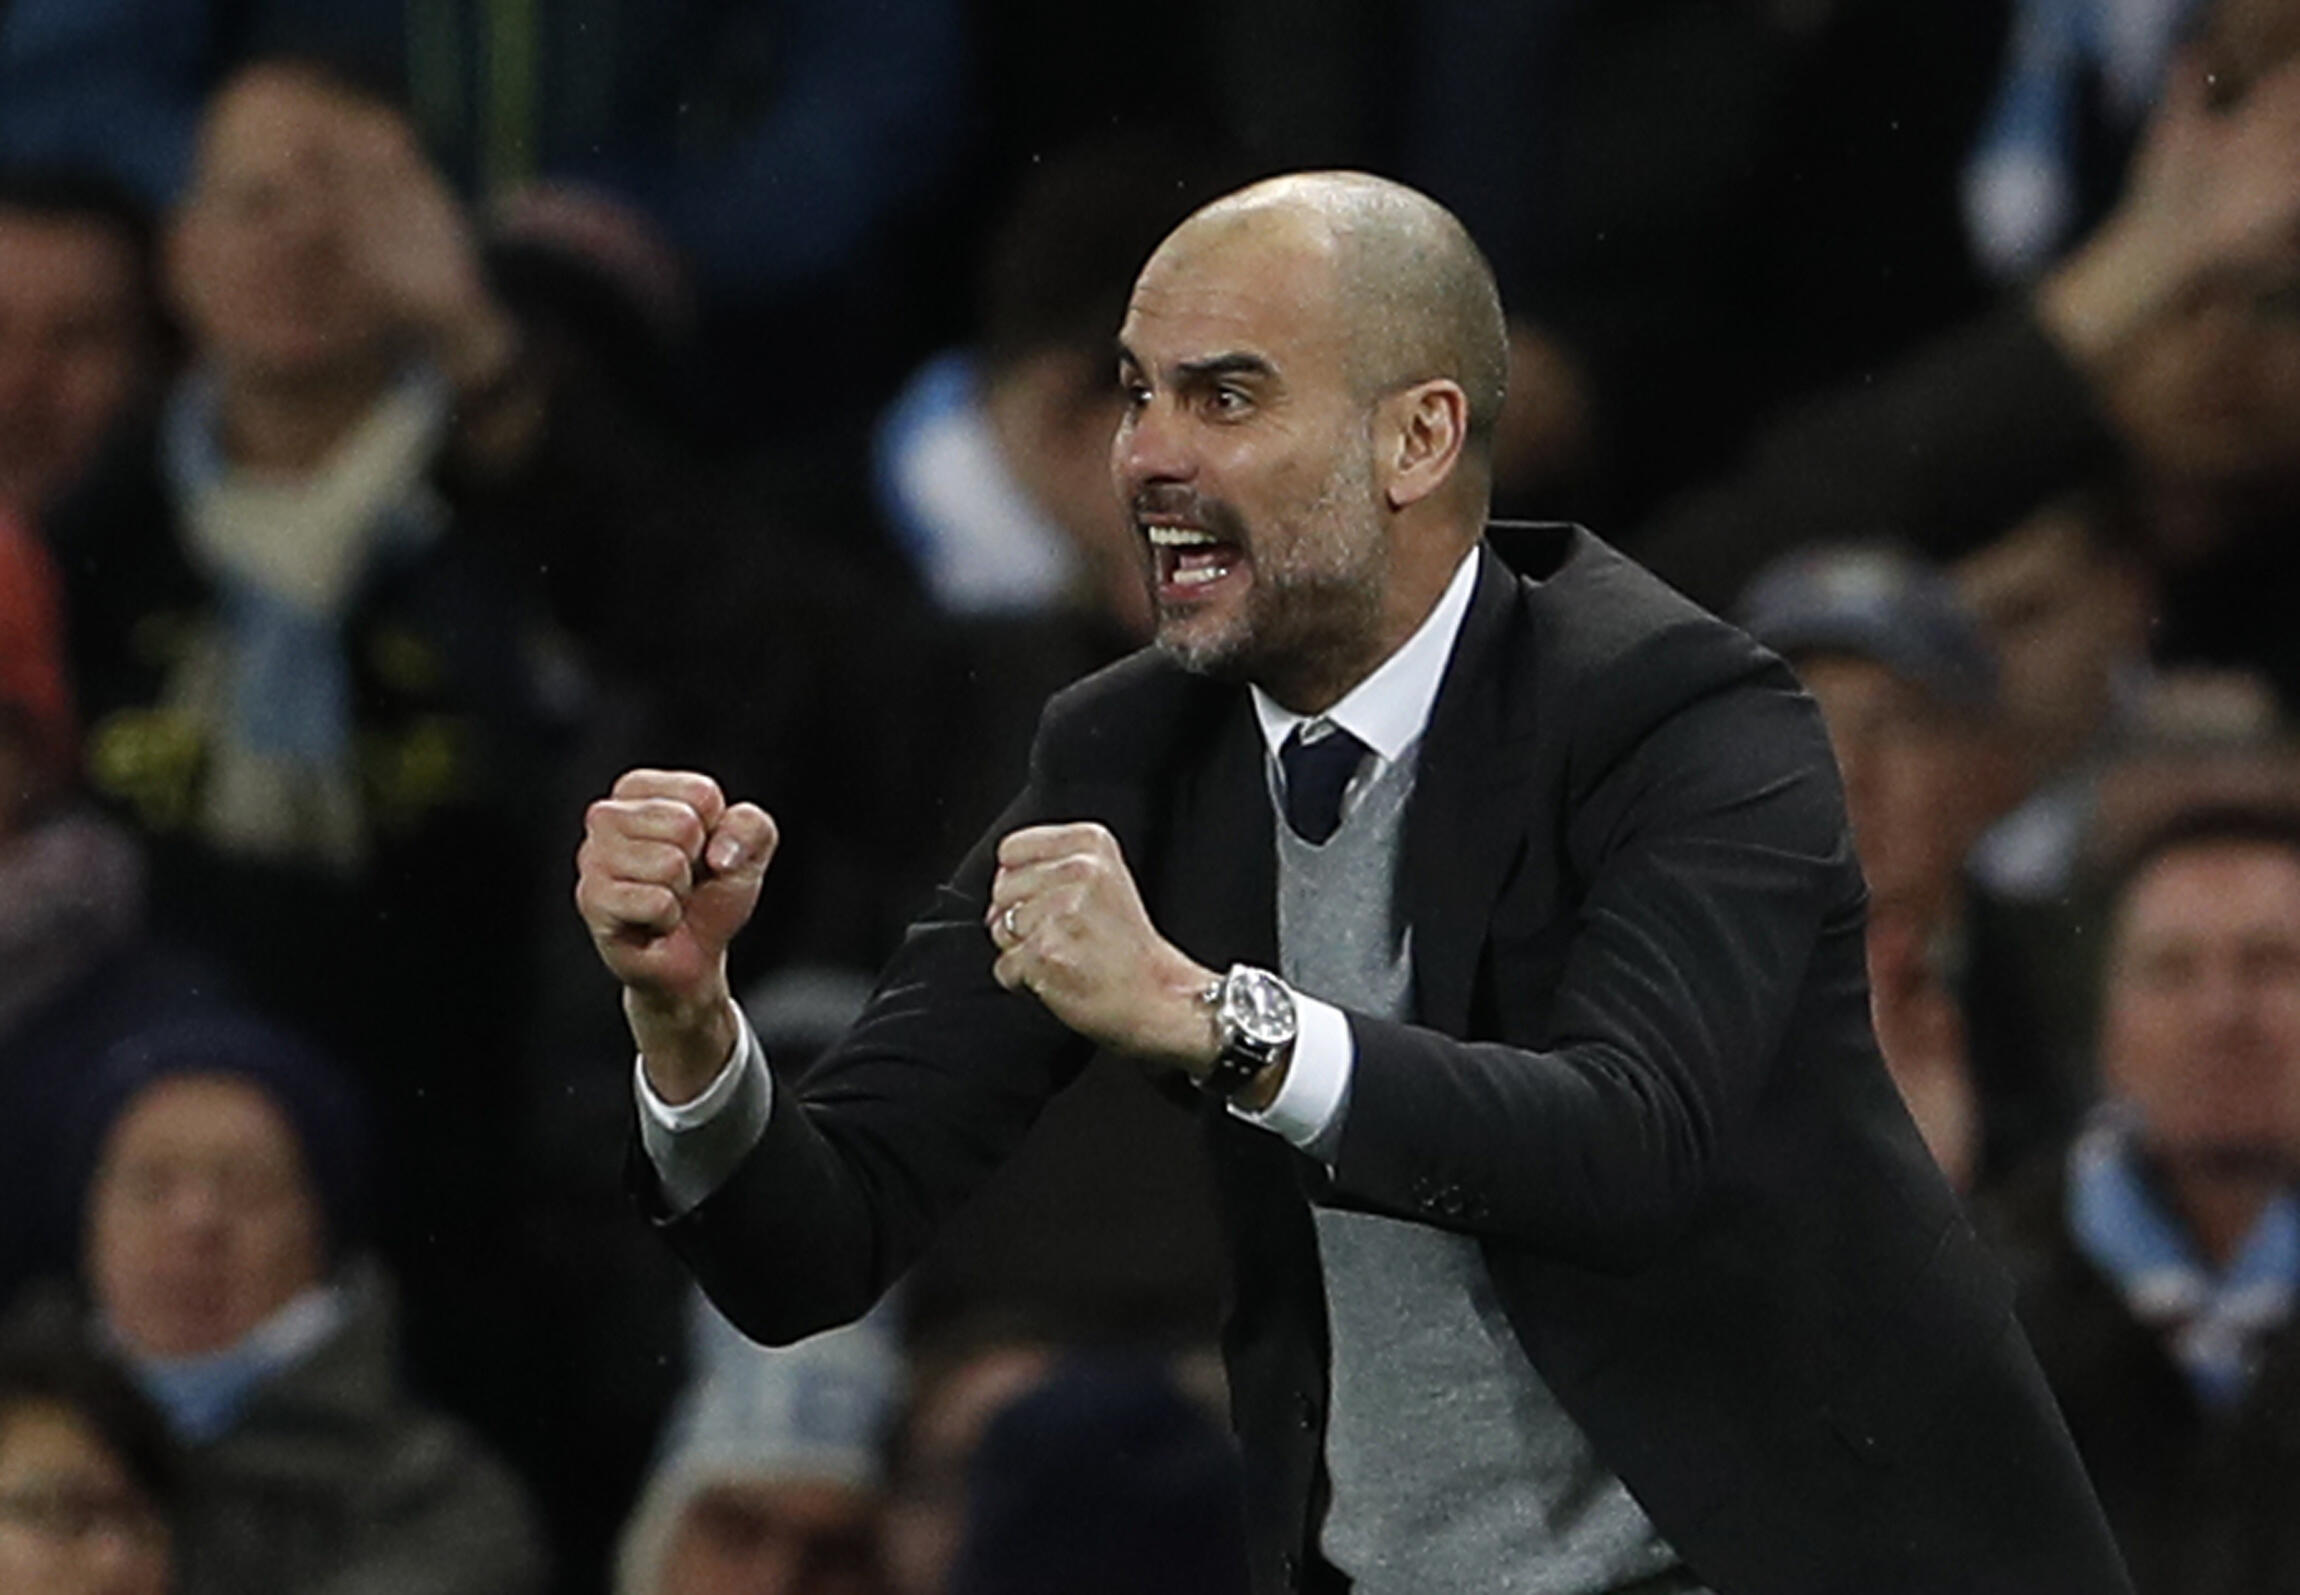 Manchester City manager Pep Guardiola said his side needed to tighten up in defence.